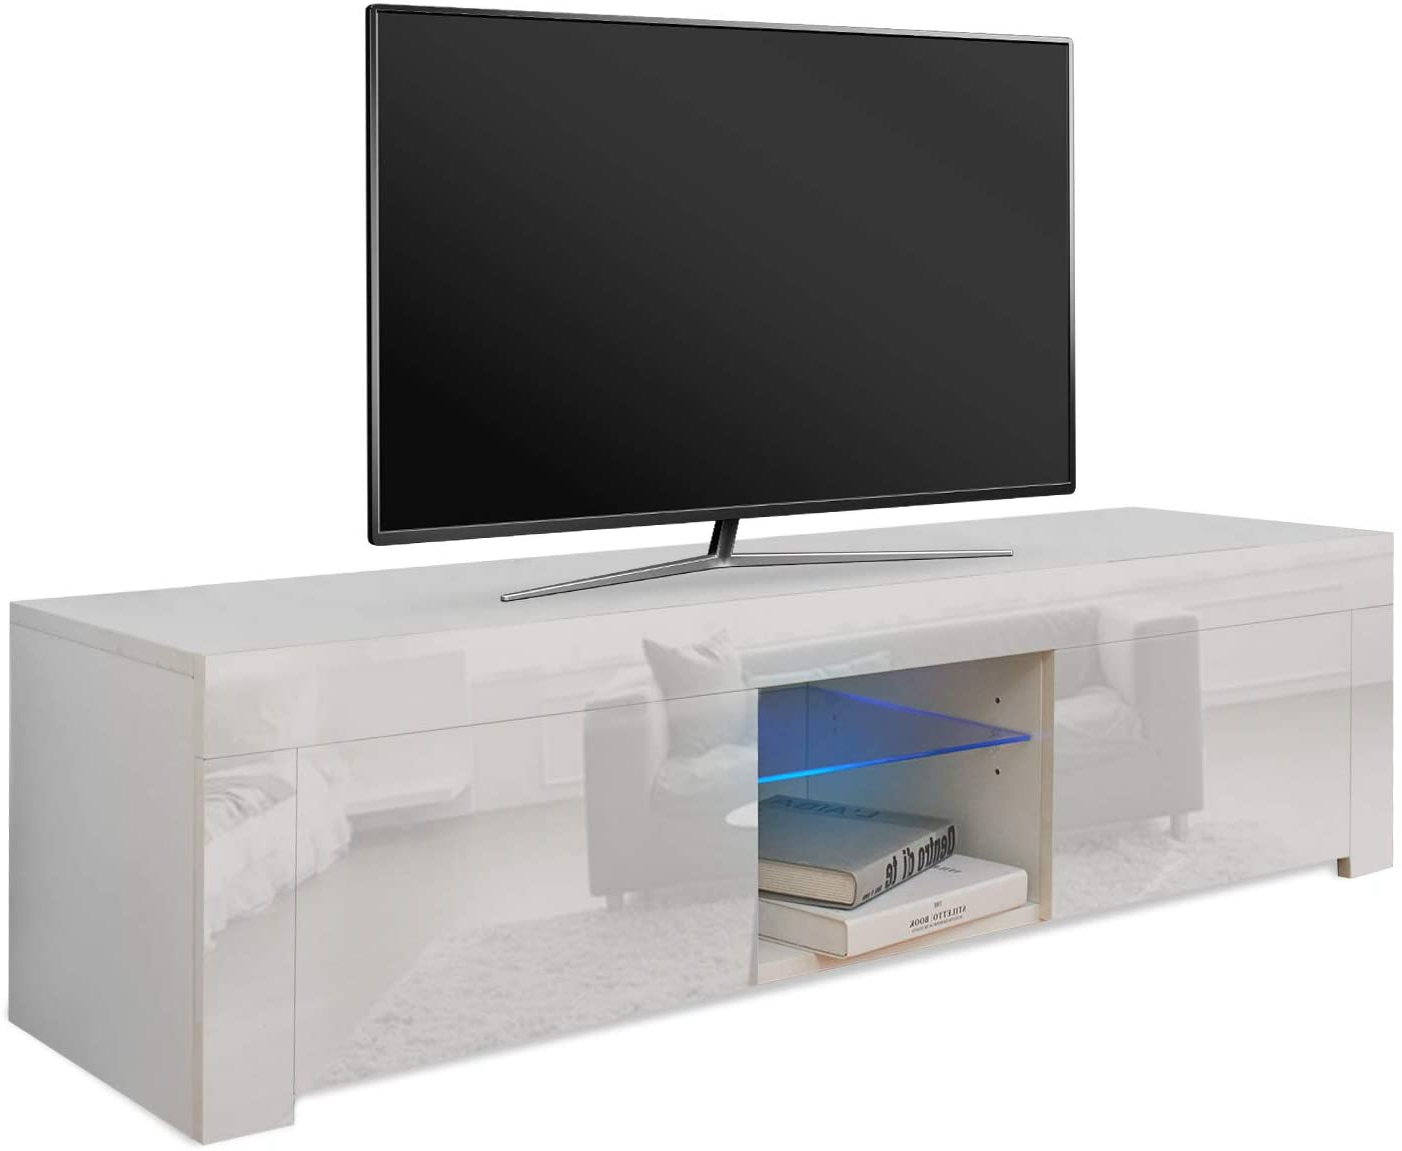 Tv Cabinet Entertainment Unit Stand Blue Led Gloss Pertaining To Solo 200 Modern Led Tv Stands (View 3 of 20)